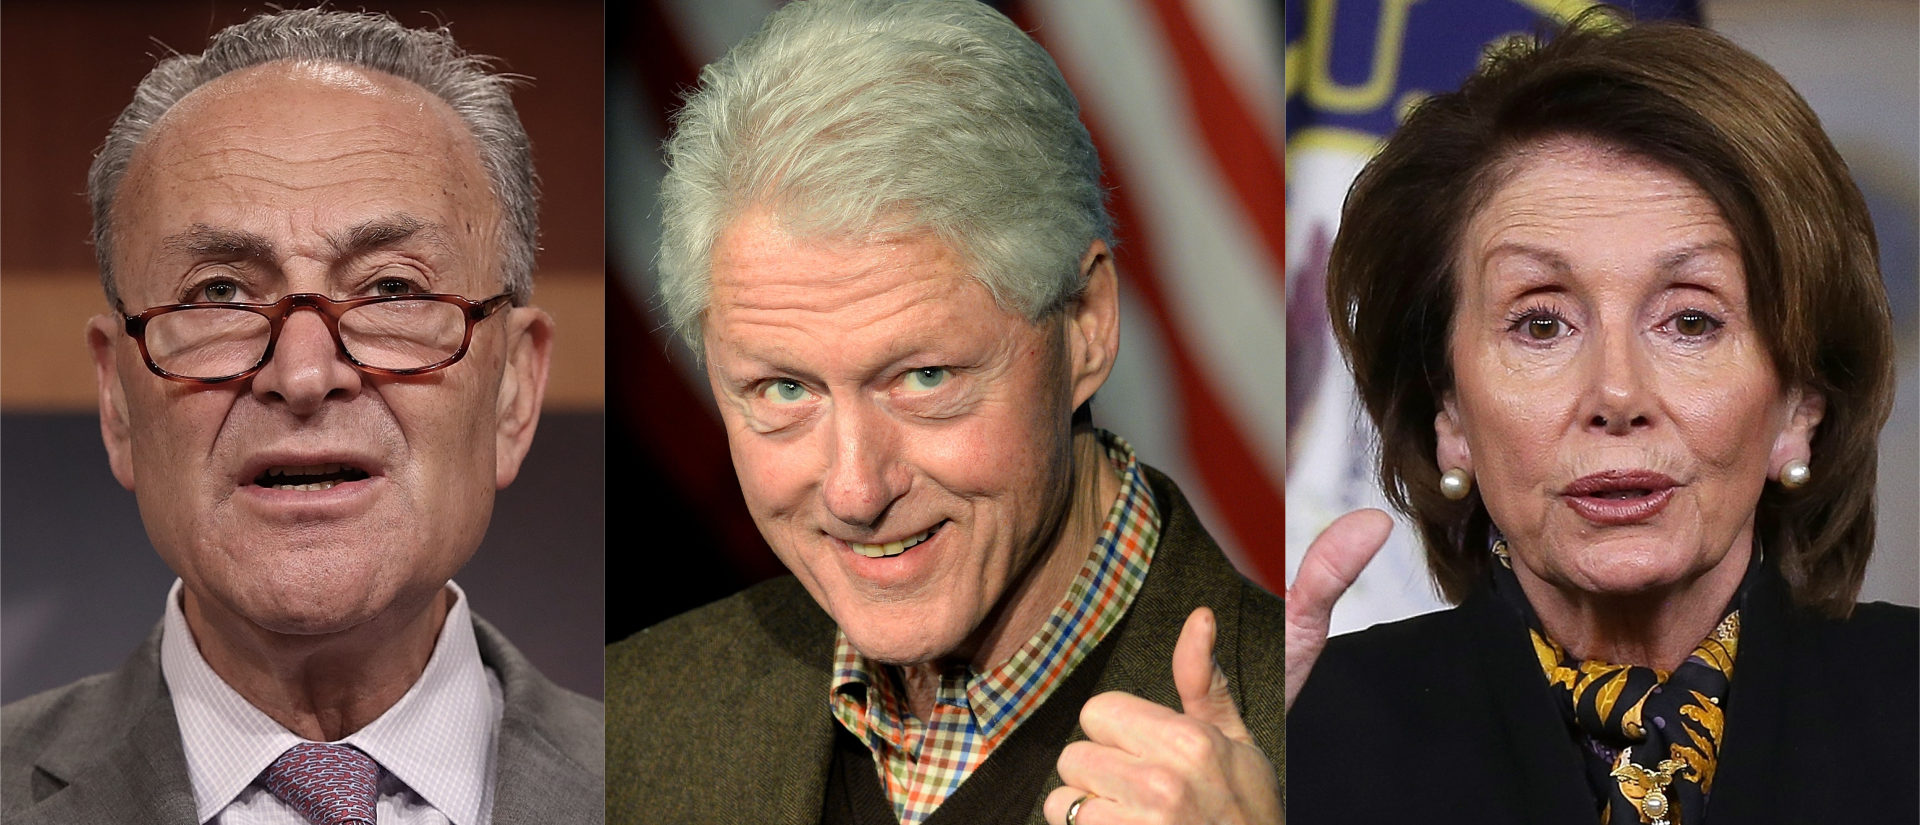 Pelosi And Schumer Should Take A Lesson From Bill Clinton/ Getty Images Collage